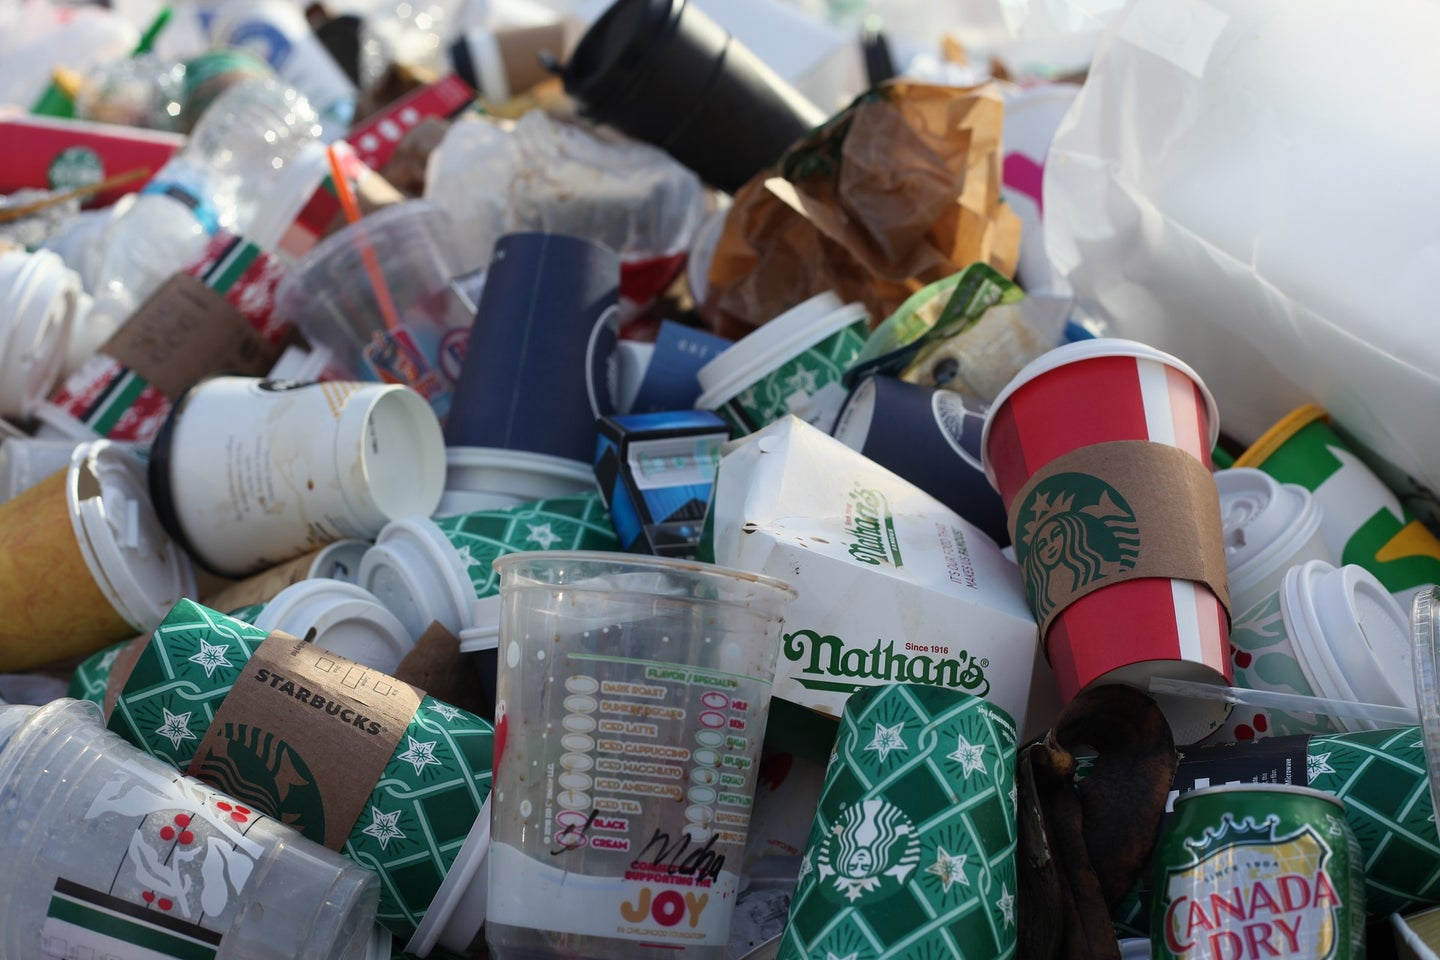 Empty cups, both plastic and paper, take out containers, straws, and other trash sit in a multi-colored pile. Starbucks, Nathans, Dunkin Donuts, and Canada Dry logos are visible on some of the items.